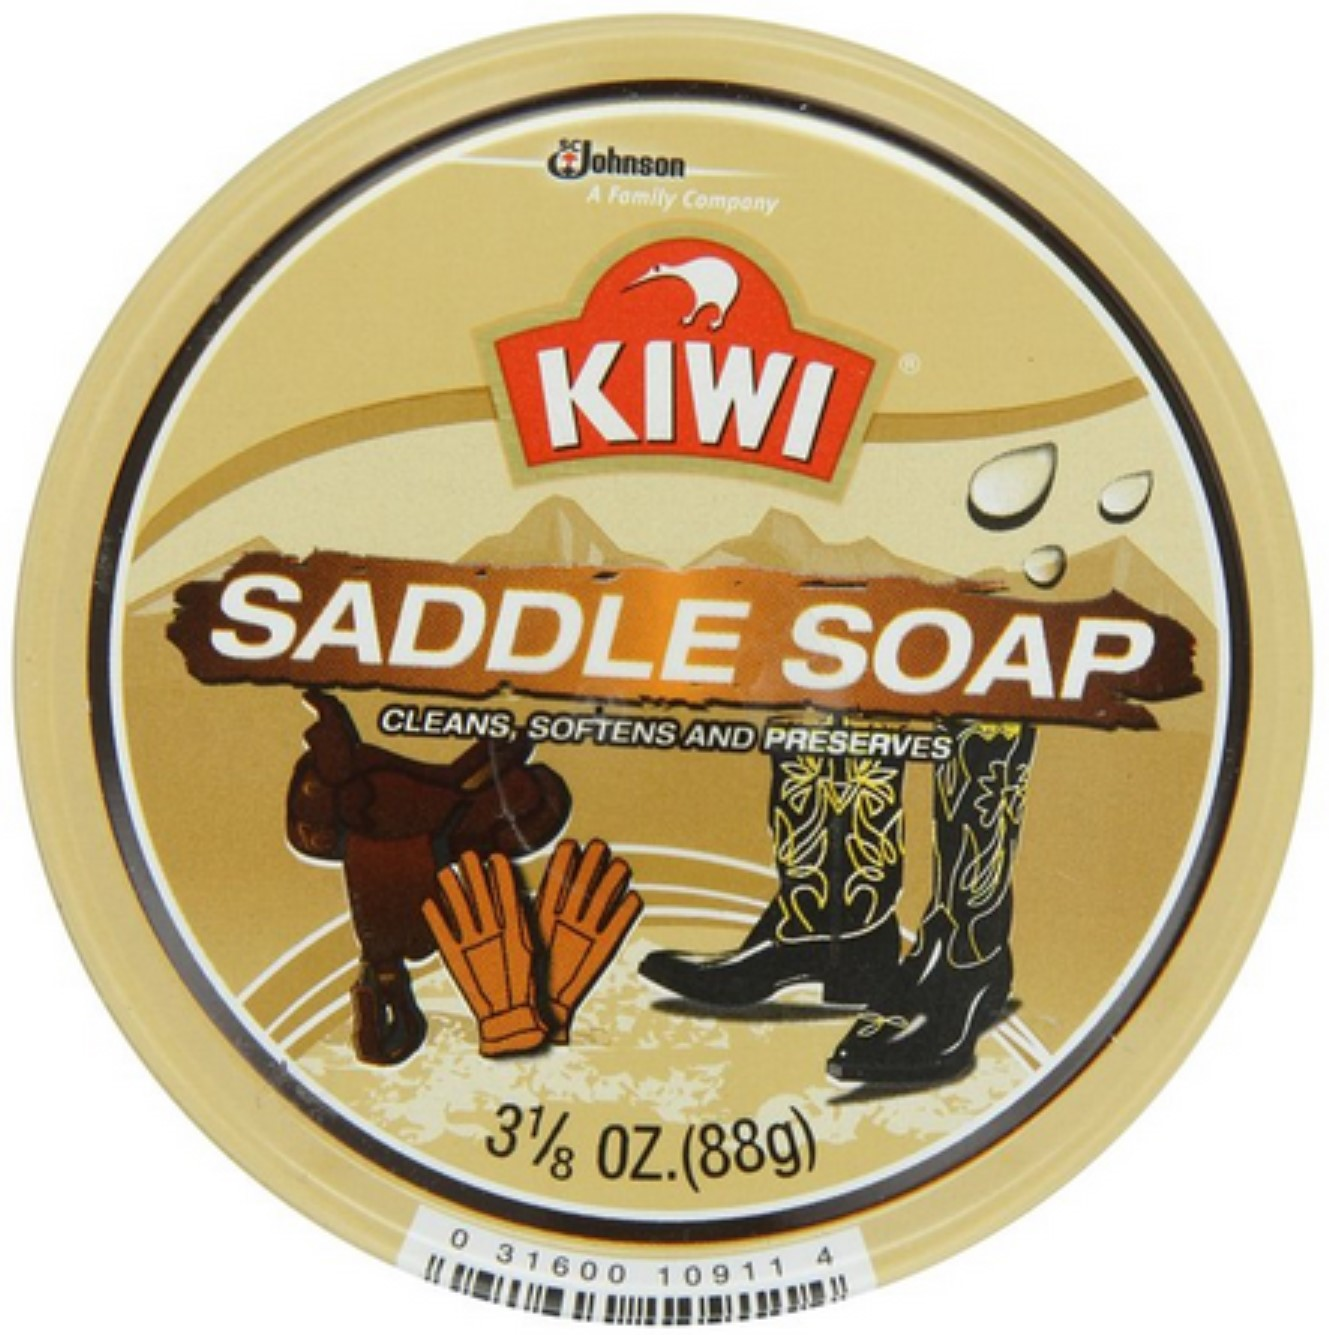 KIWI Saddle Soap 3.125 oz (Pack of 2)